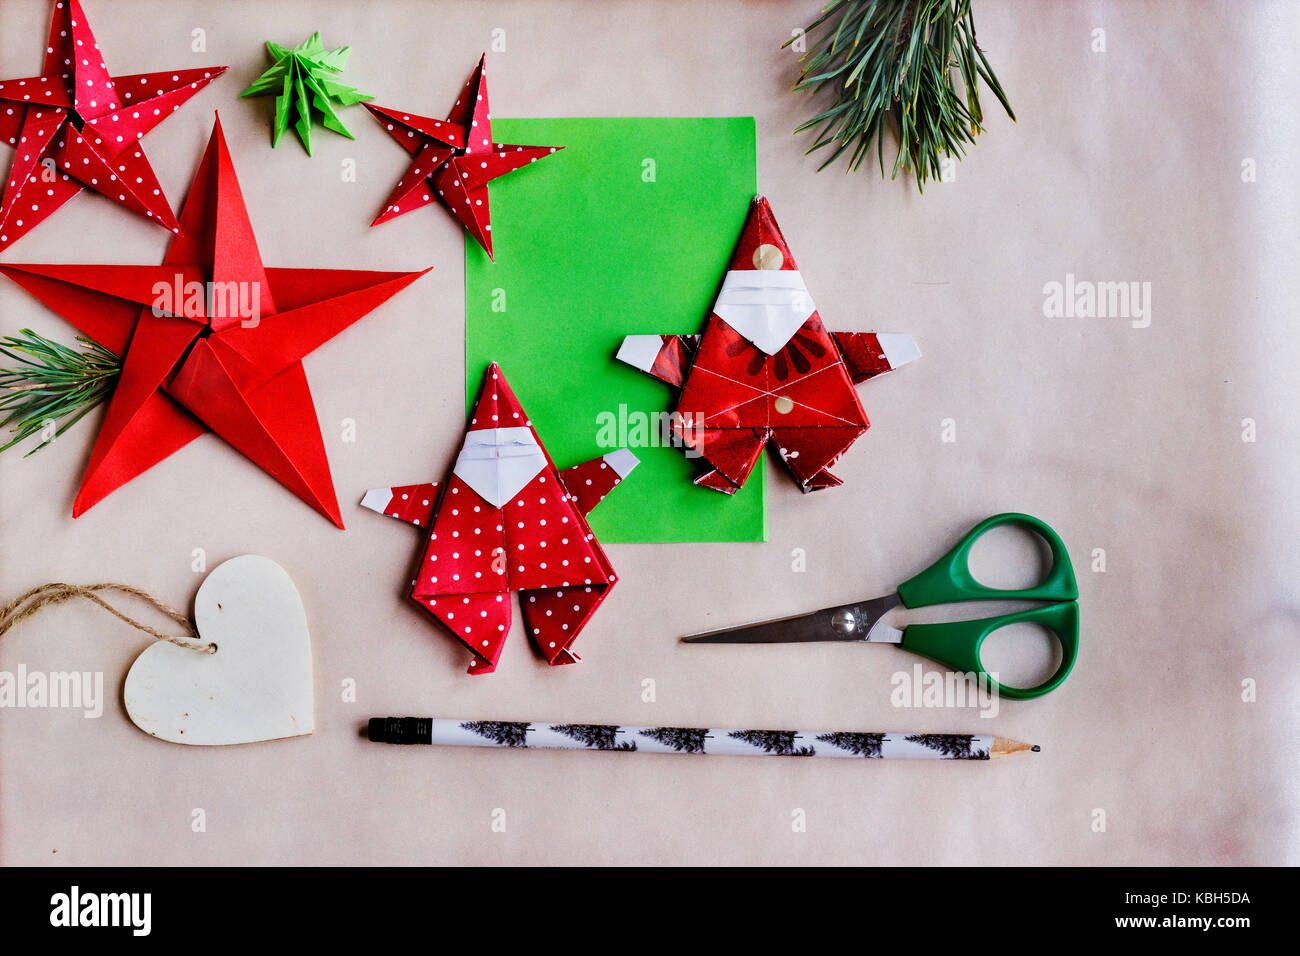 10 Easy DIY Ornaments You Can Make Out of Paper | Enfeites de ... | 956x1300